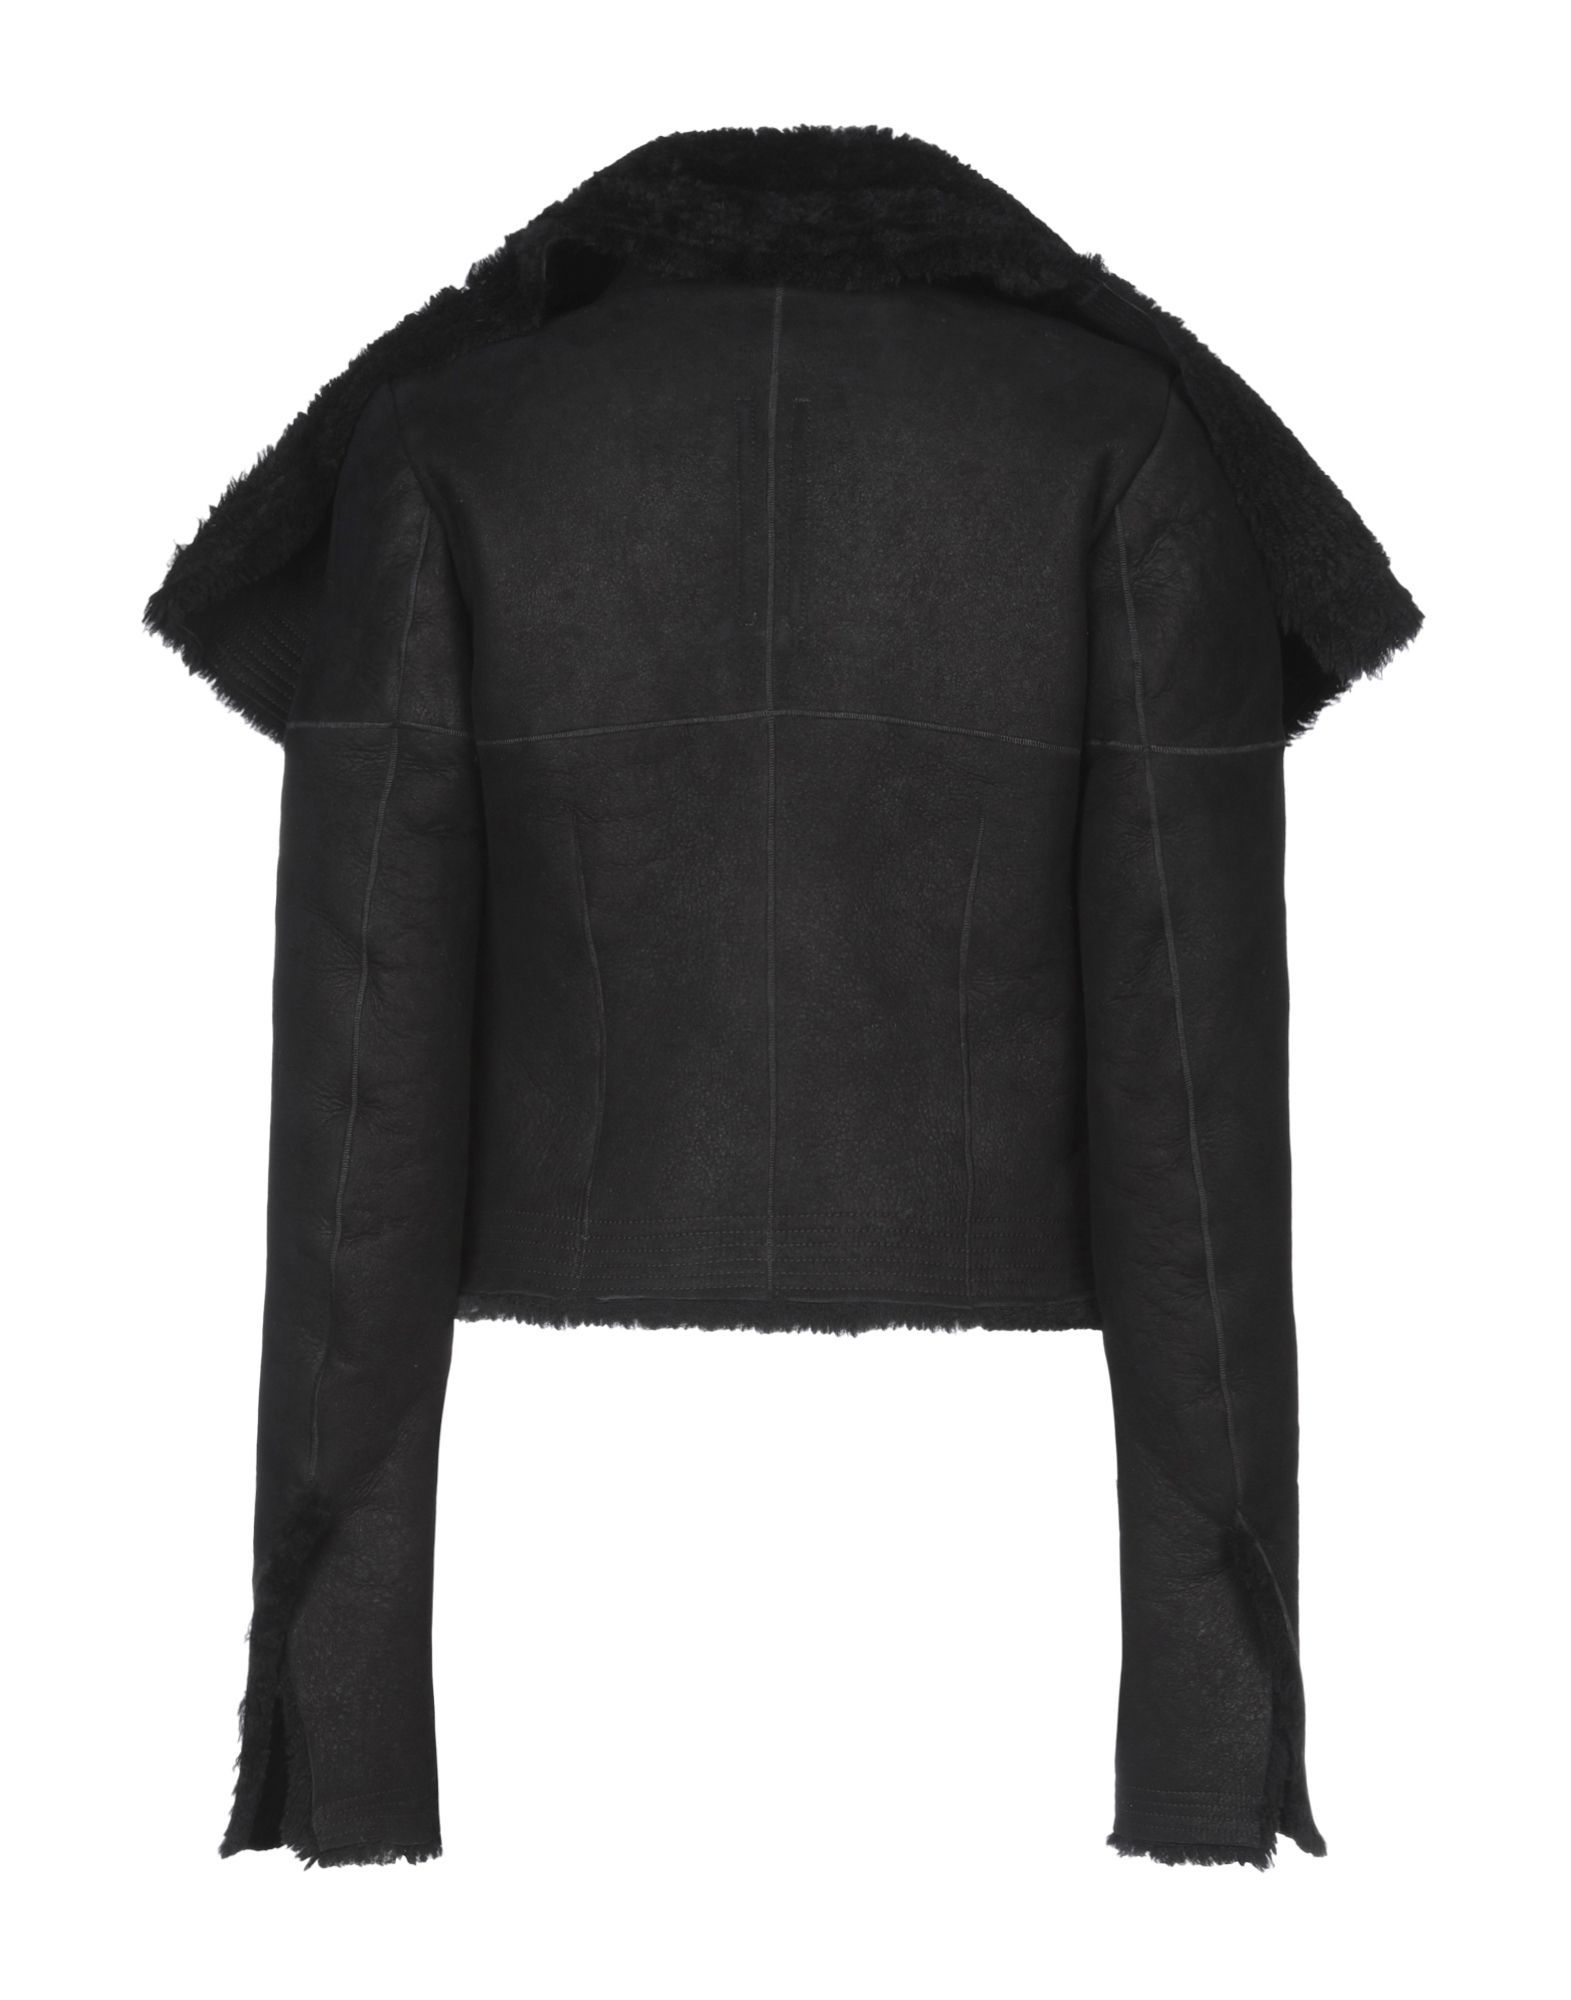 Rick Owens Black Sheepskin Leather Jacket